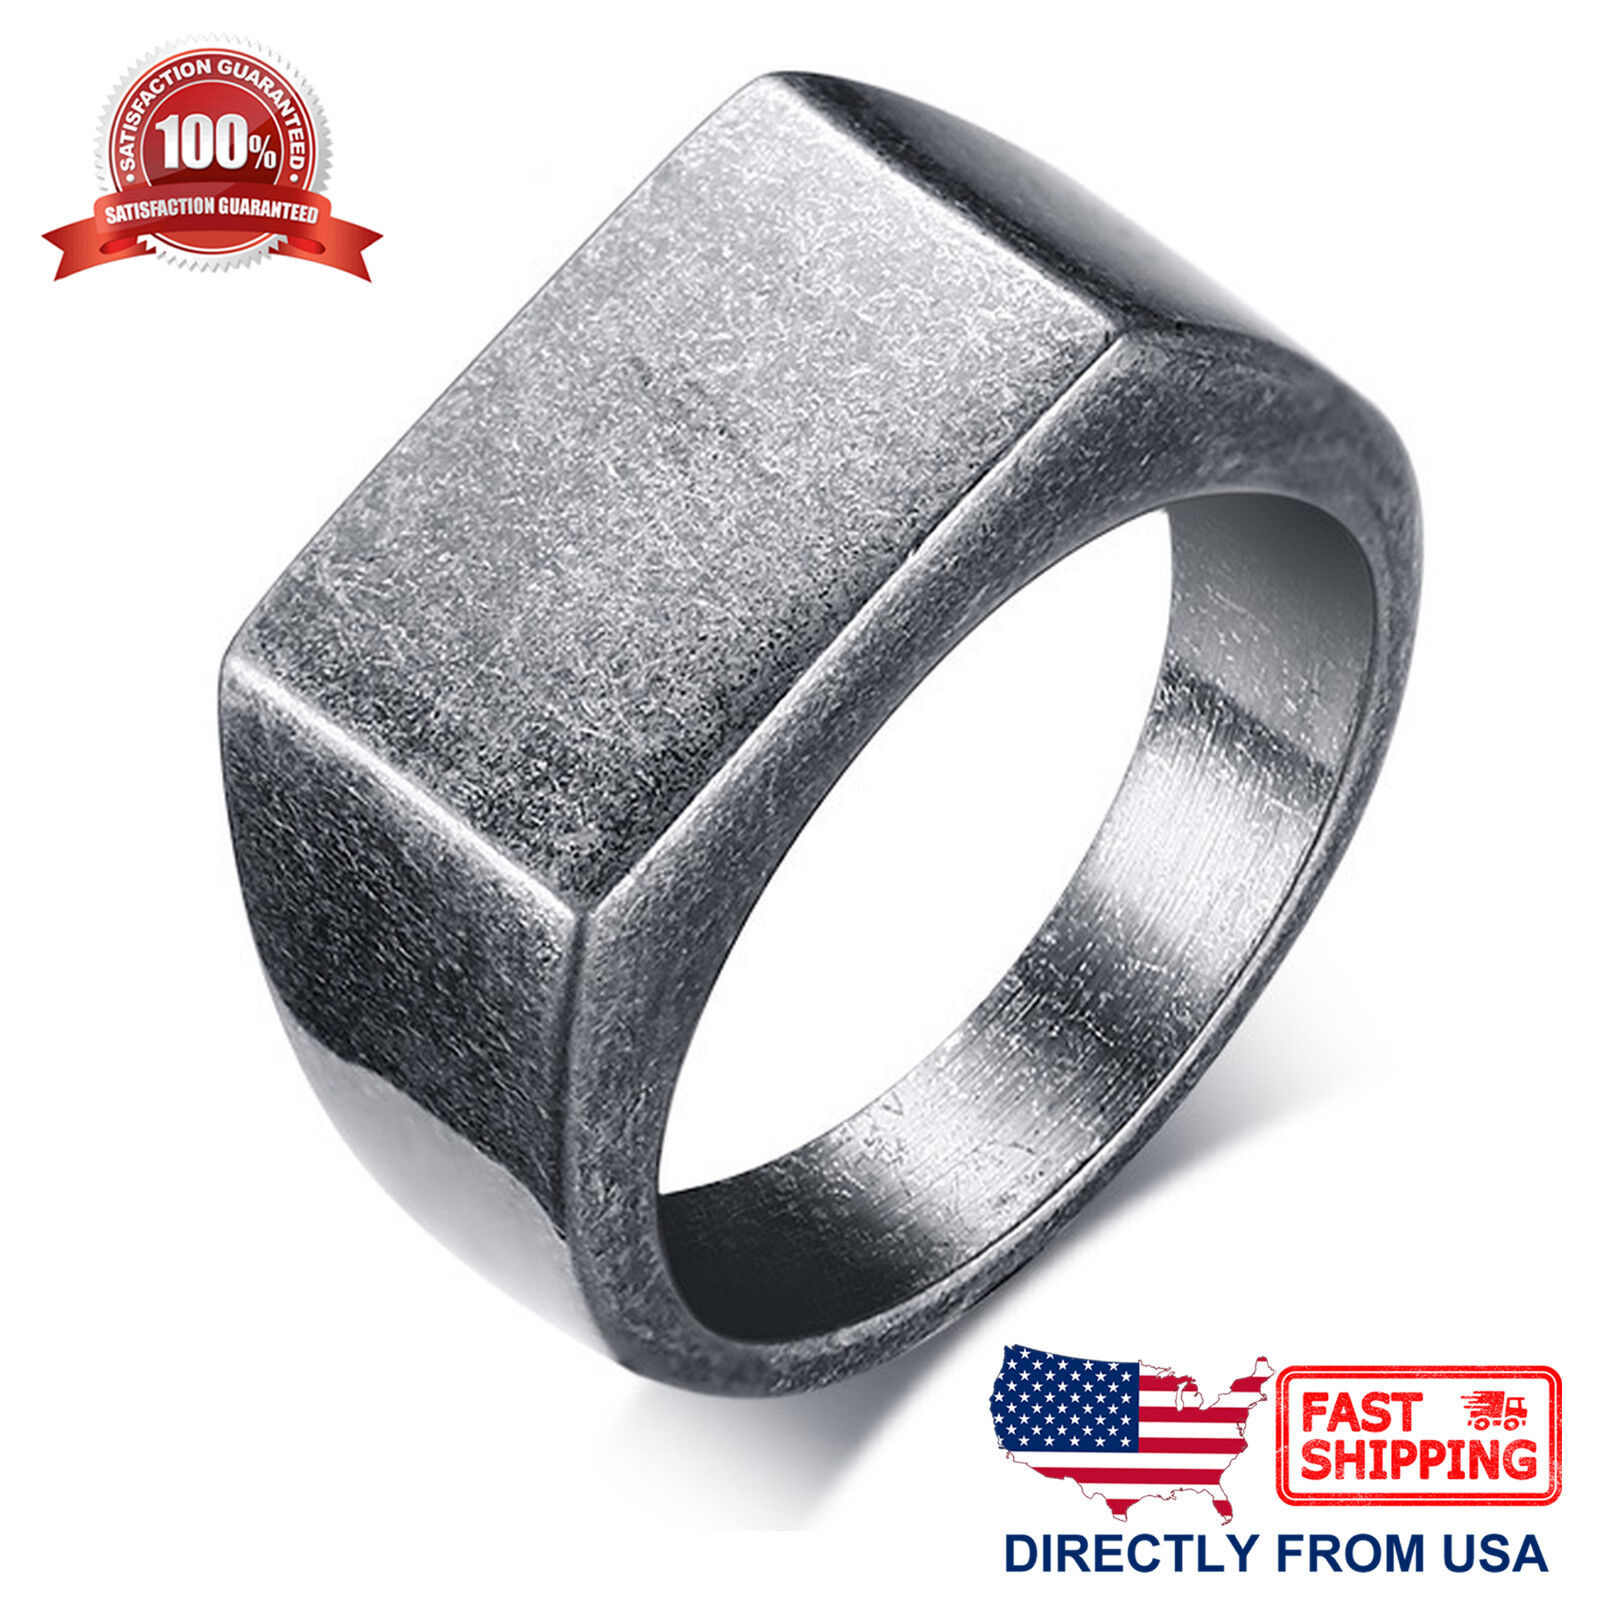 Men's Stainless Steel Retro Signet Ring Jewelry & Watches